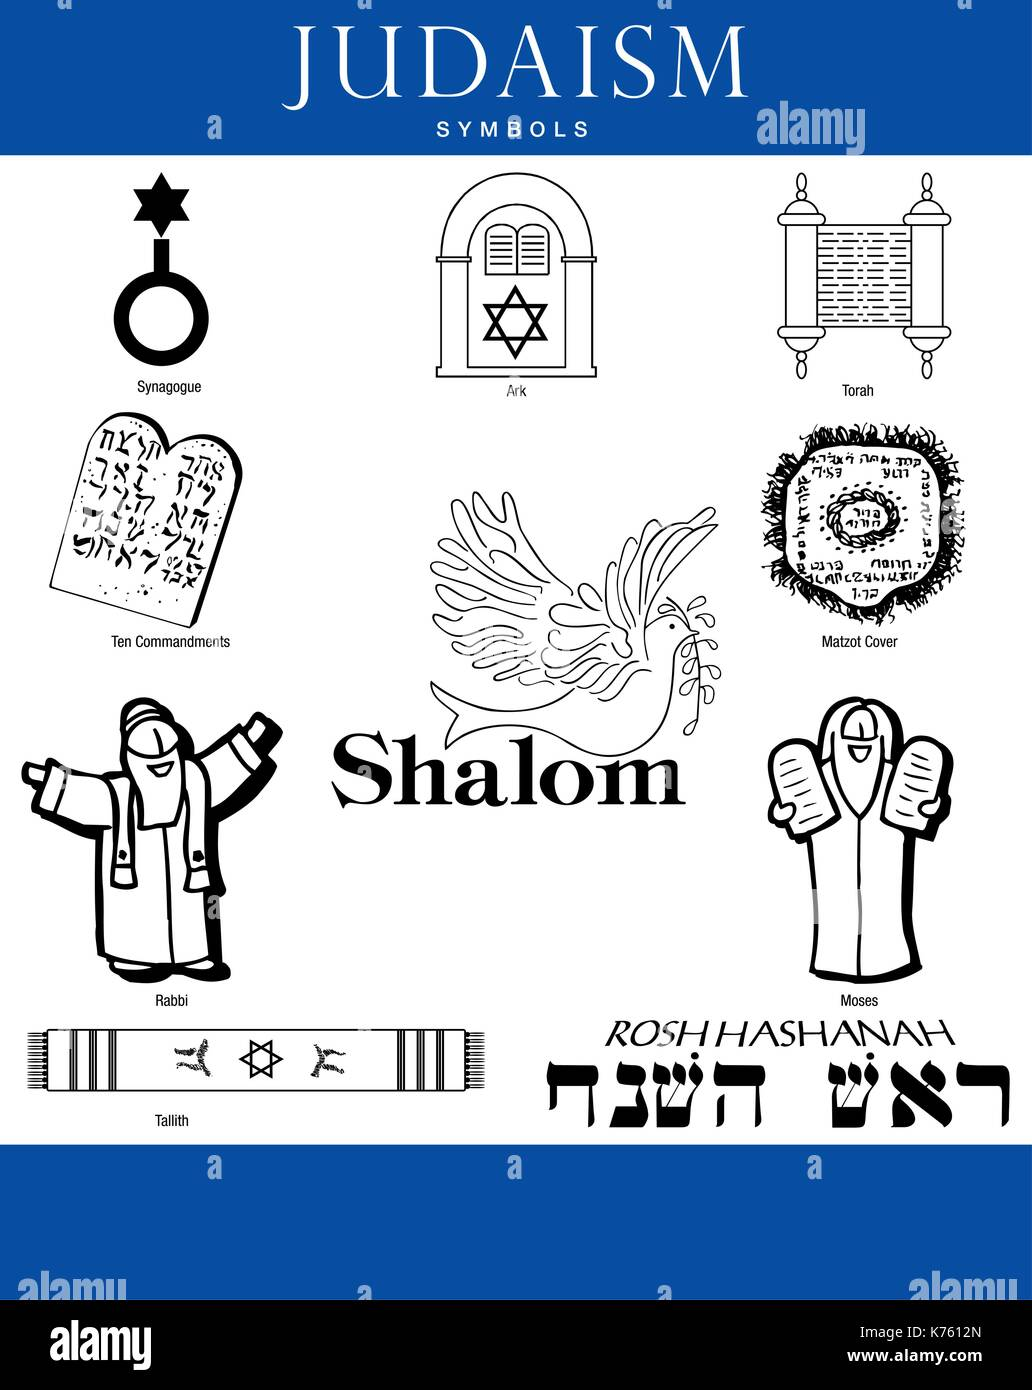 Set Of Judaism Symbols On White Background With Blue Bars Vector